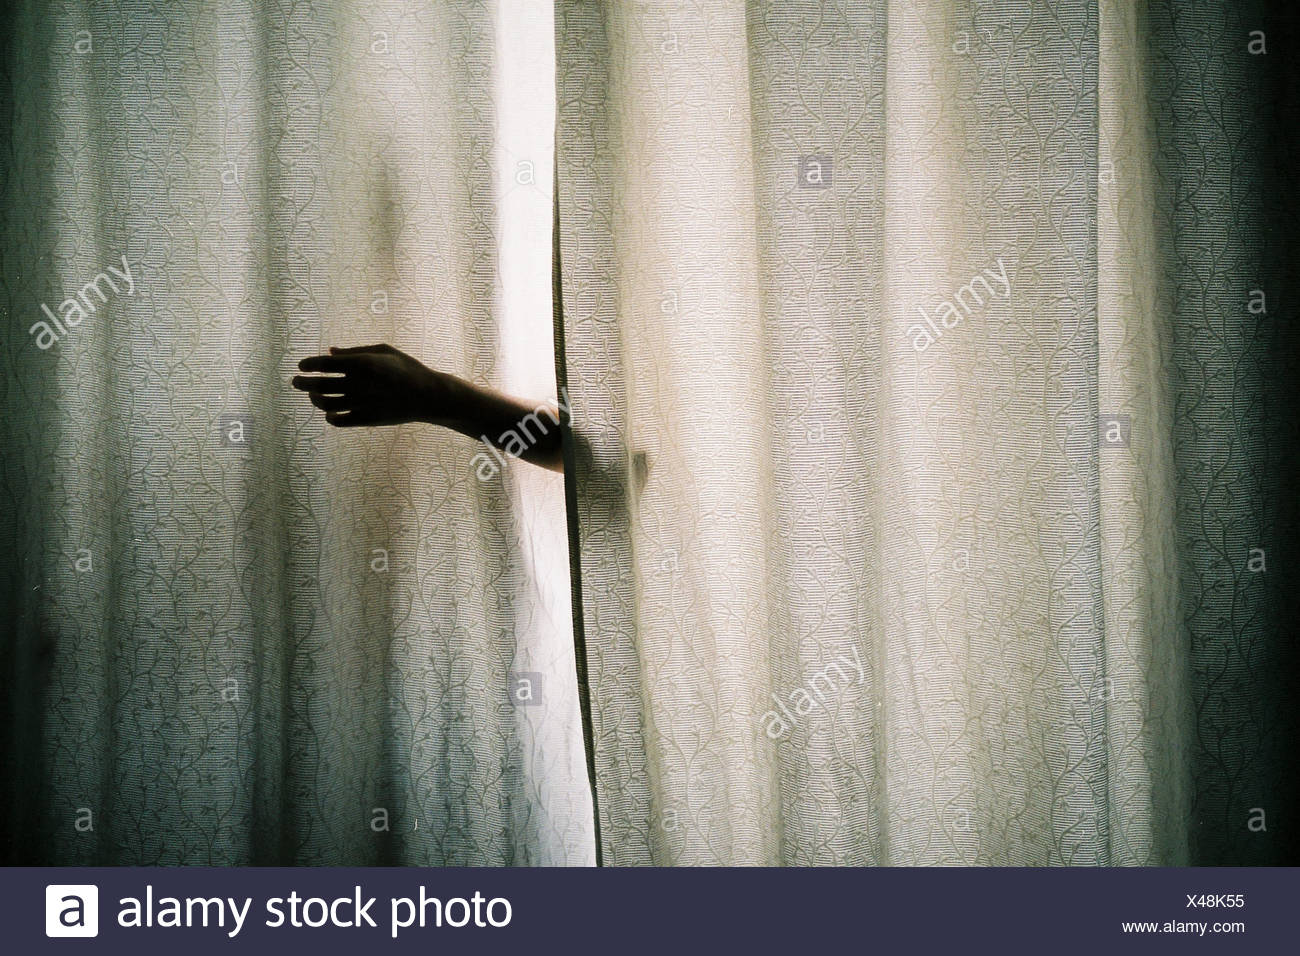 Hand reaching from behind curtain - Stock Image